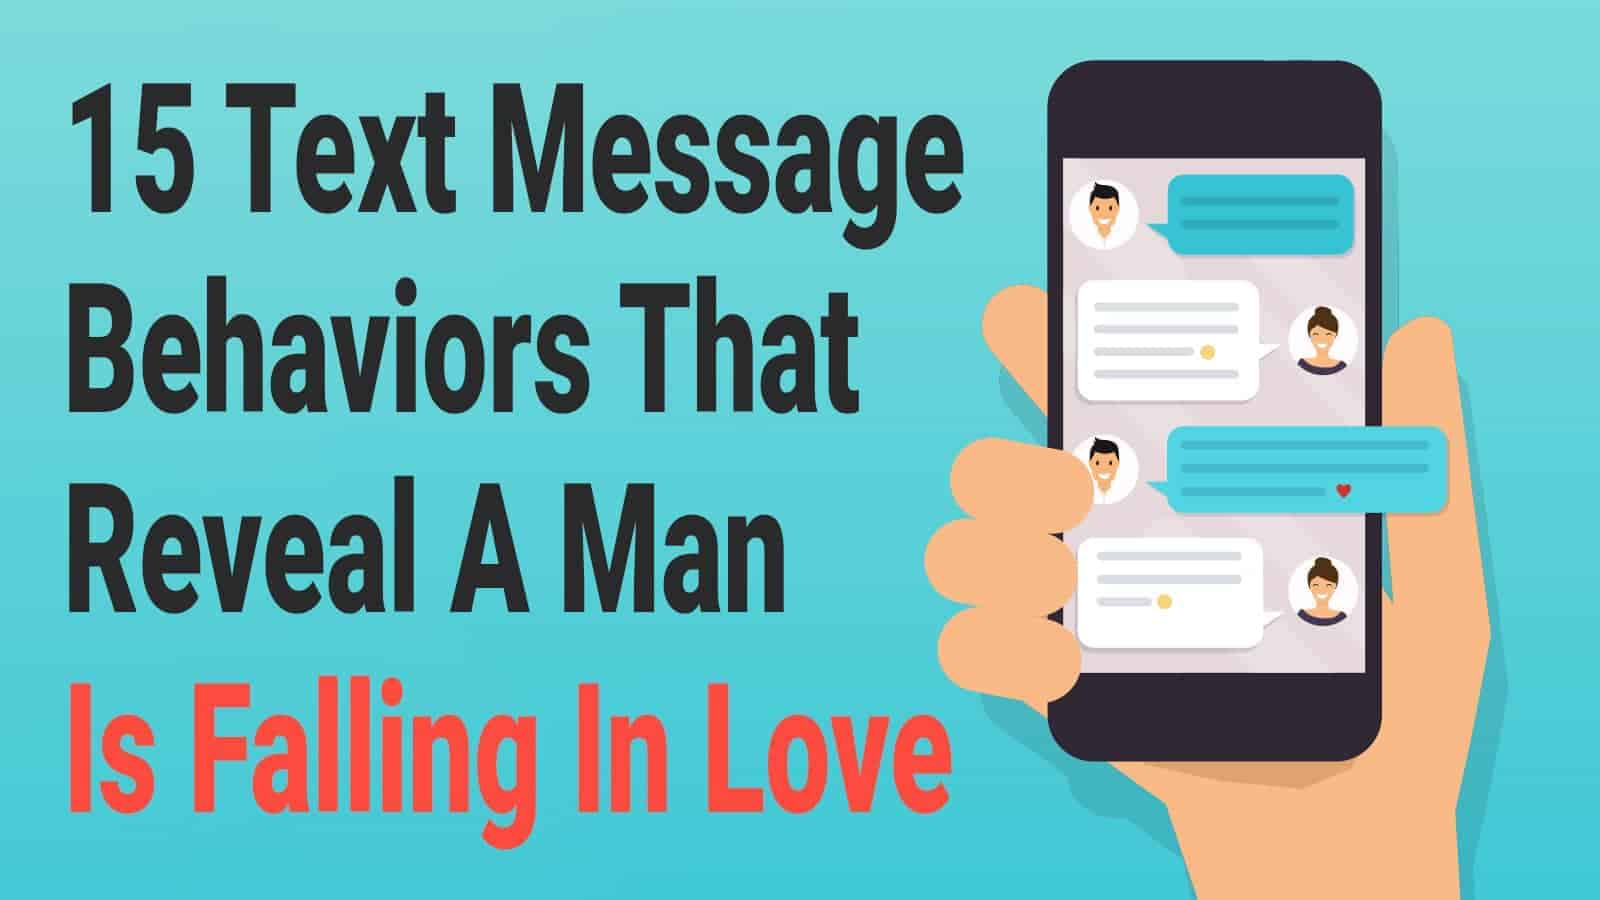 15 Text Message Behaviors That Reveal A Man Is Falling In